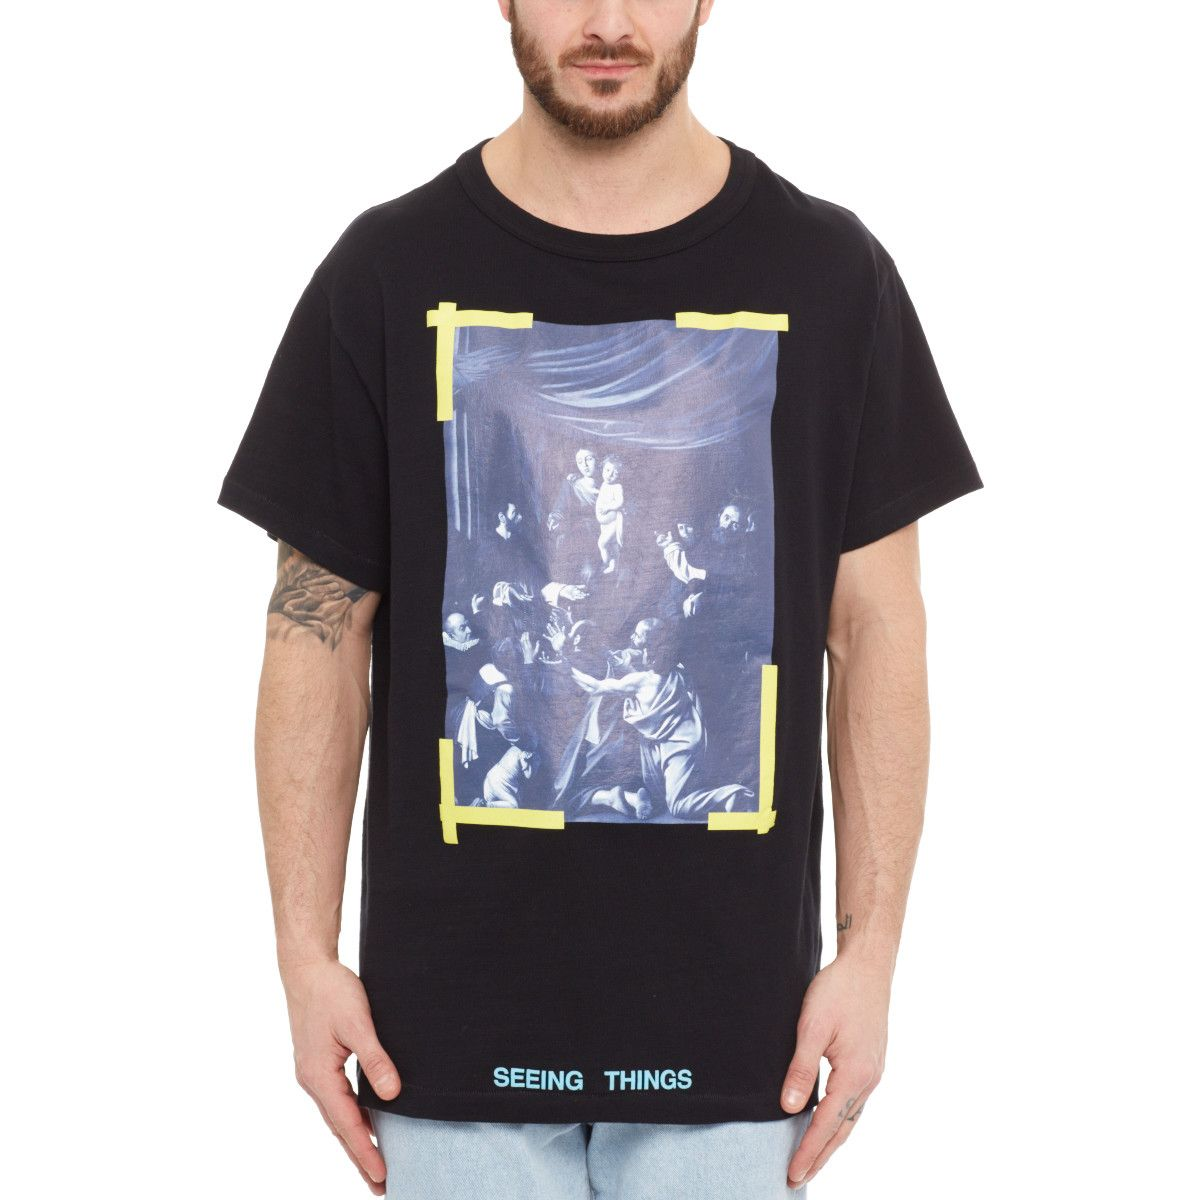 289f5d7e Caravaggio t-shirt from the F/W2017-18 Off-White c/o Virgil Abloh collection  in black